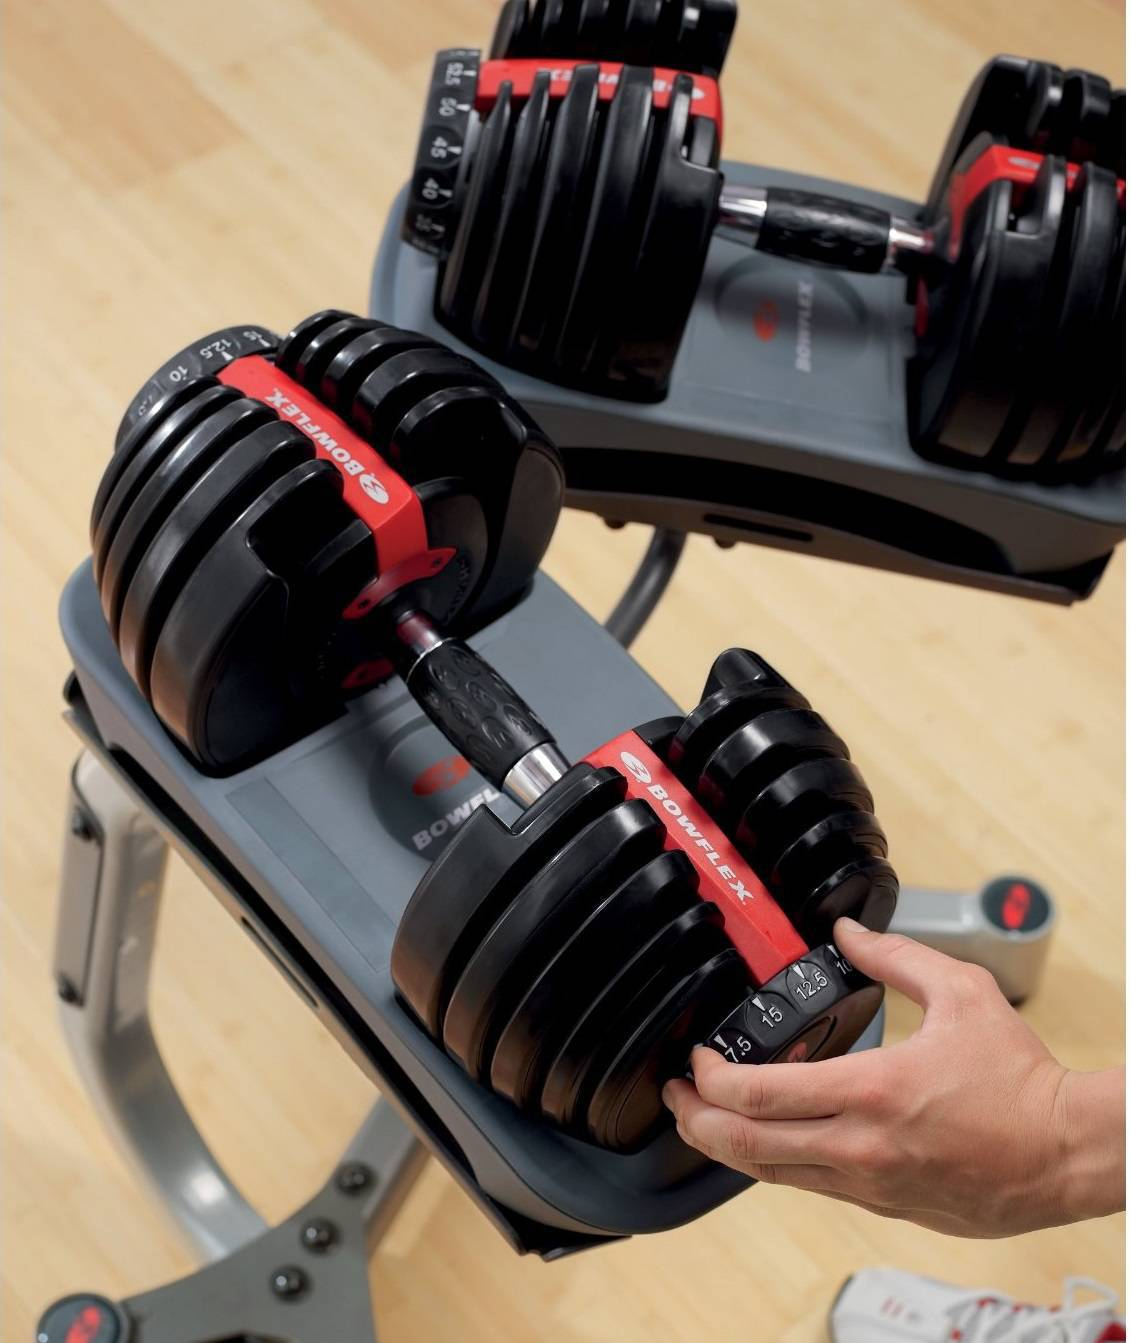 Top Exercise Equipment: Top 19 Small Exercise Equipment That Are Worth To Buy